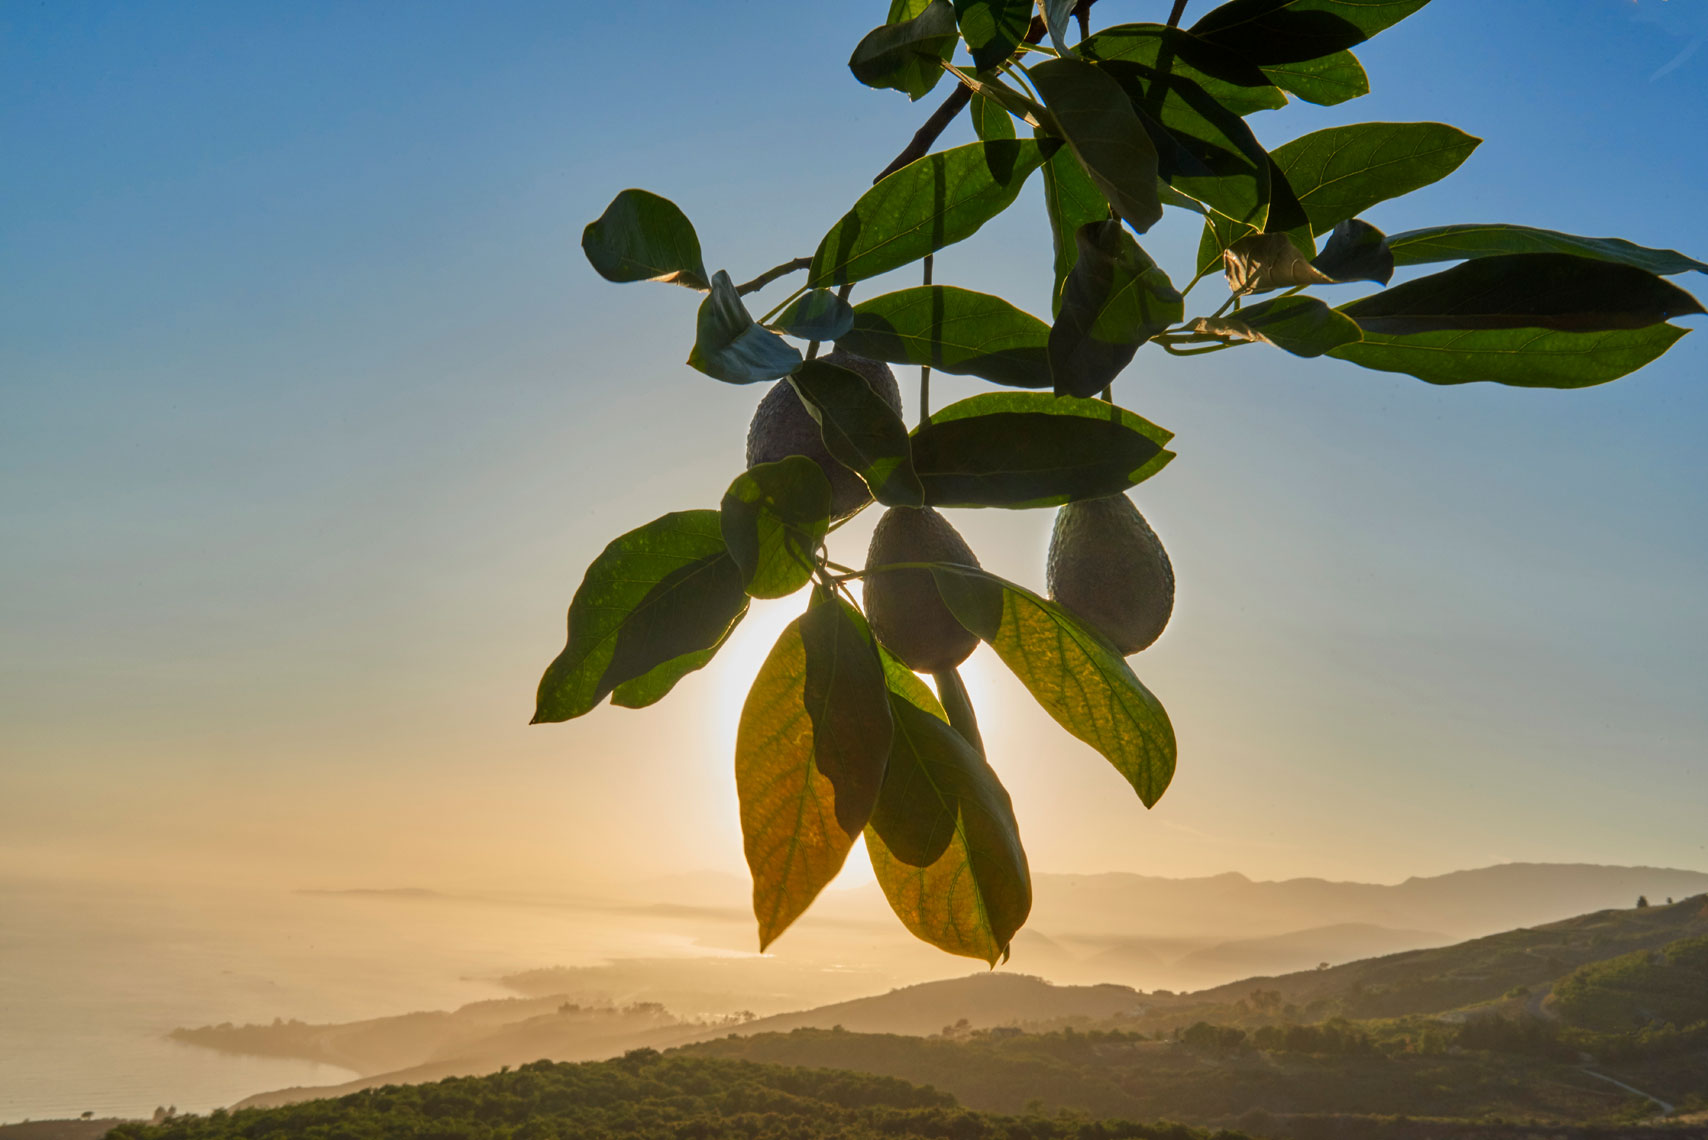 Avocados-on-branch-with-orchard-in-background-on-southern-california-coast-by-Los-Angeles-farm-photographer-Joe-Atlas.